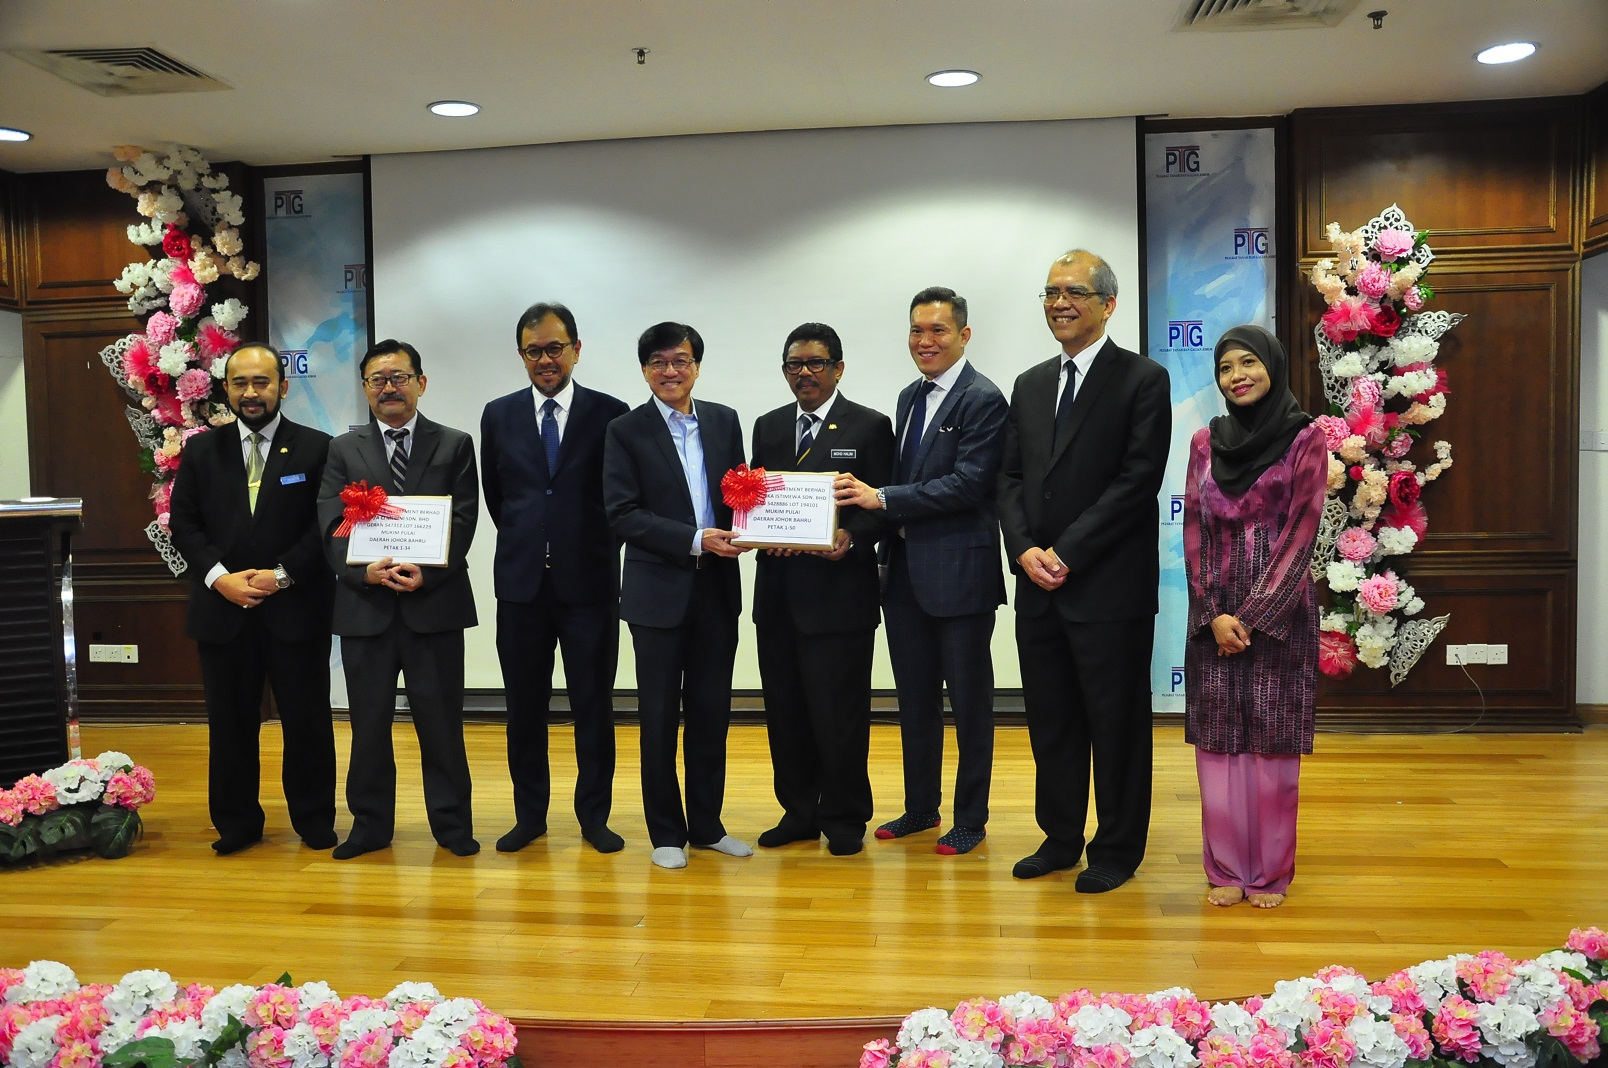 7 000 Property Buyers And Plot Developers In Medini To Benefit From E Strata Sub Module The Iskandarian